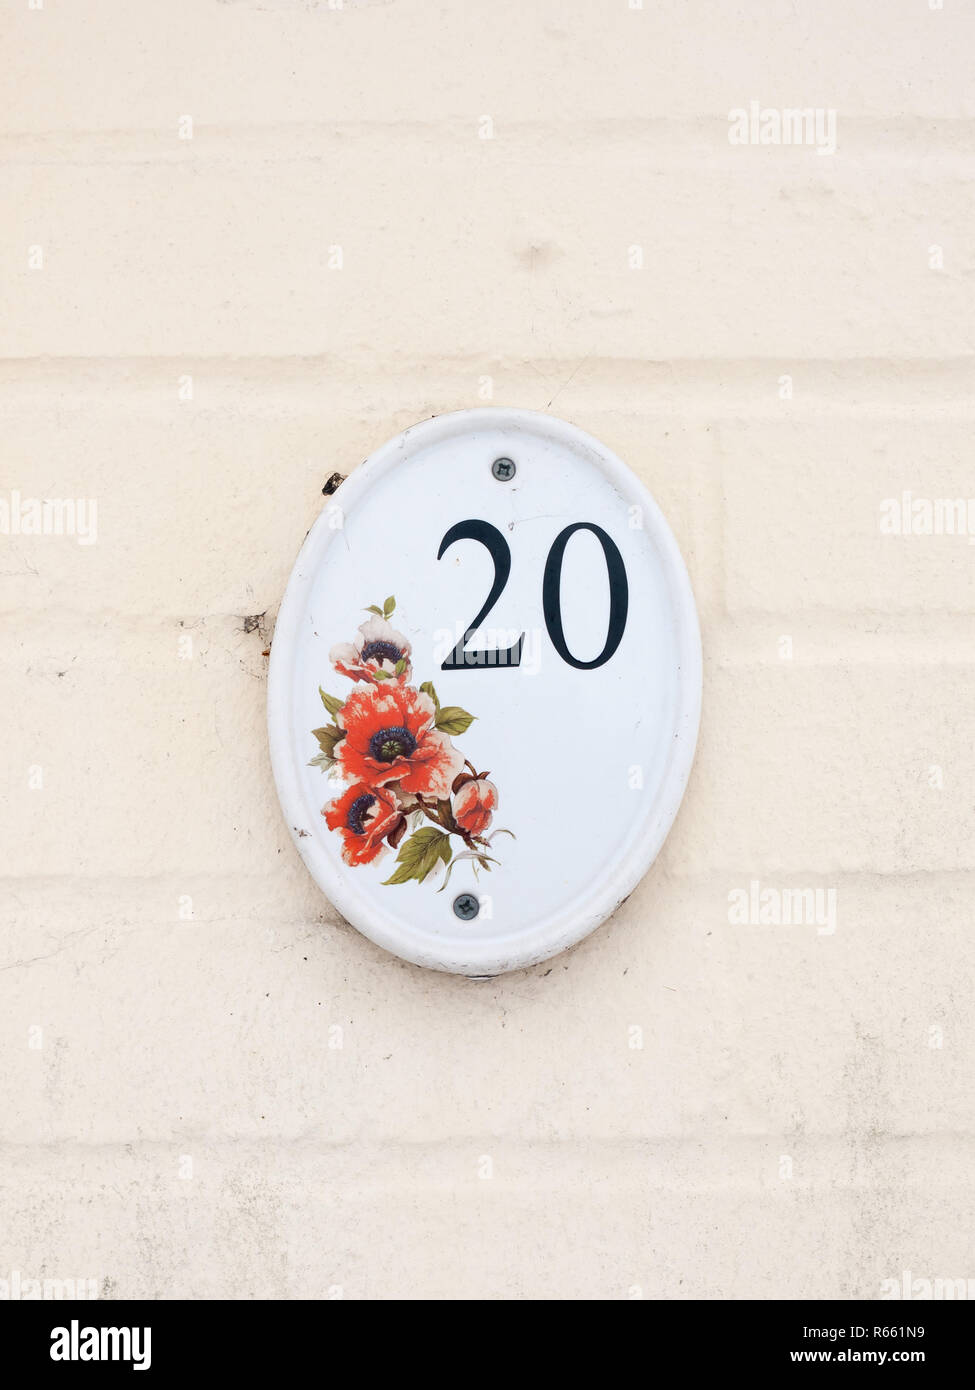 House Number Plate On Outside White Wall 20 Flower Design